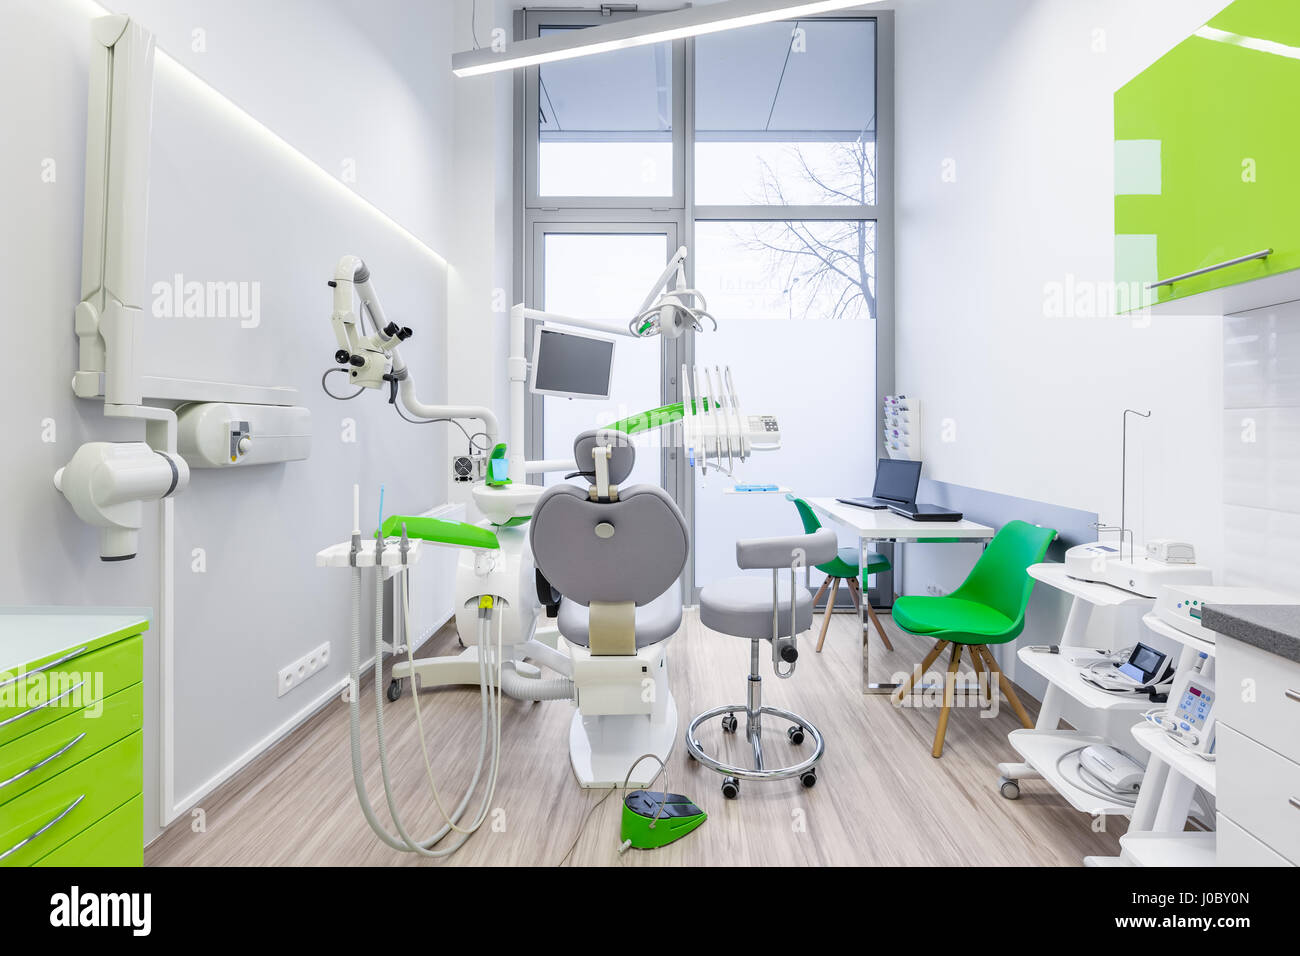 dental office interior. White, Dental Office Interior With Green Furniture And Modern Tools W